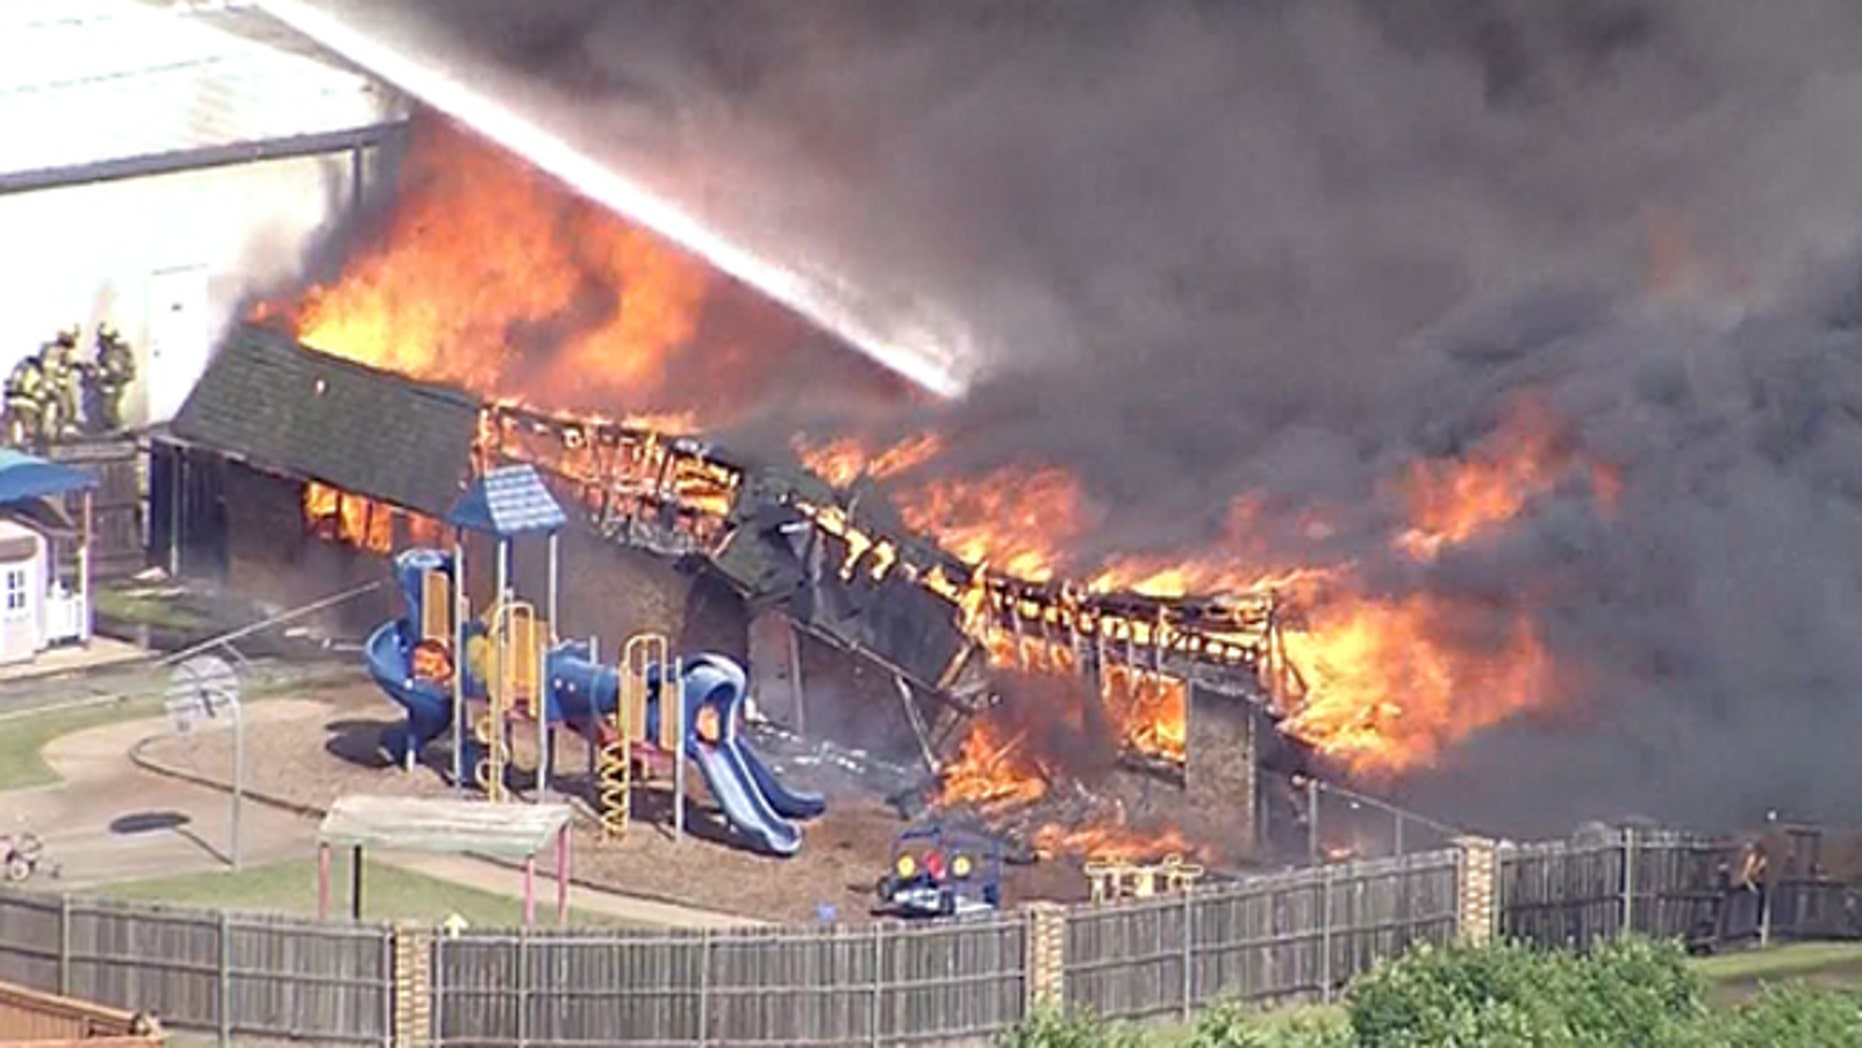 Gusty winds likely fueled a fire at a Christian school and childcare center in Texas.